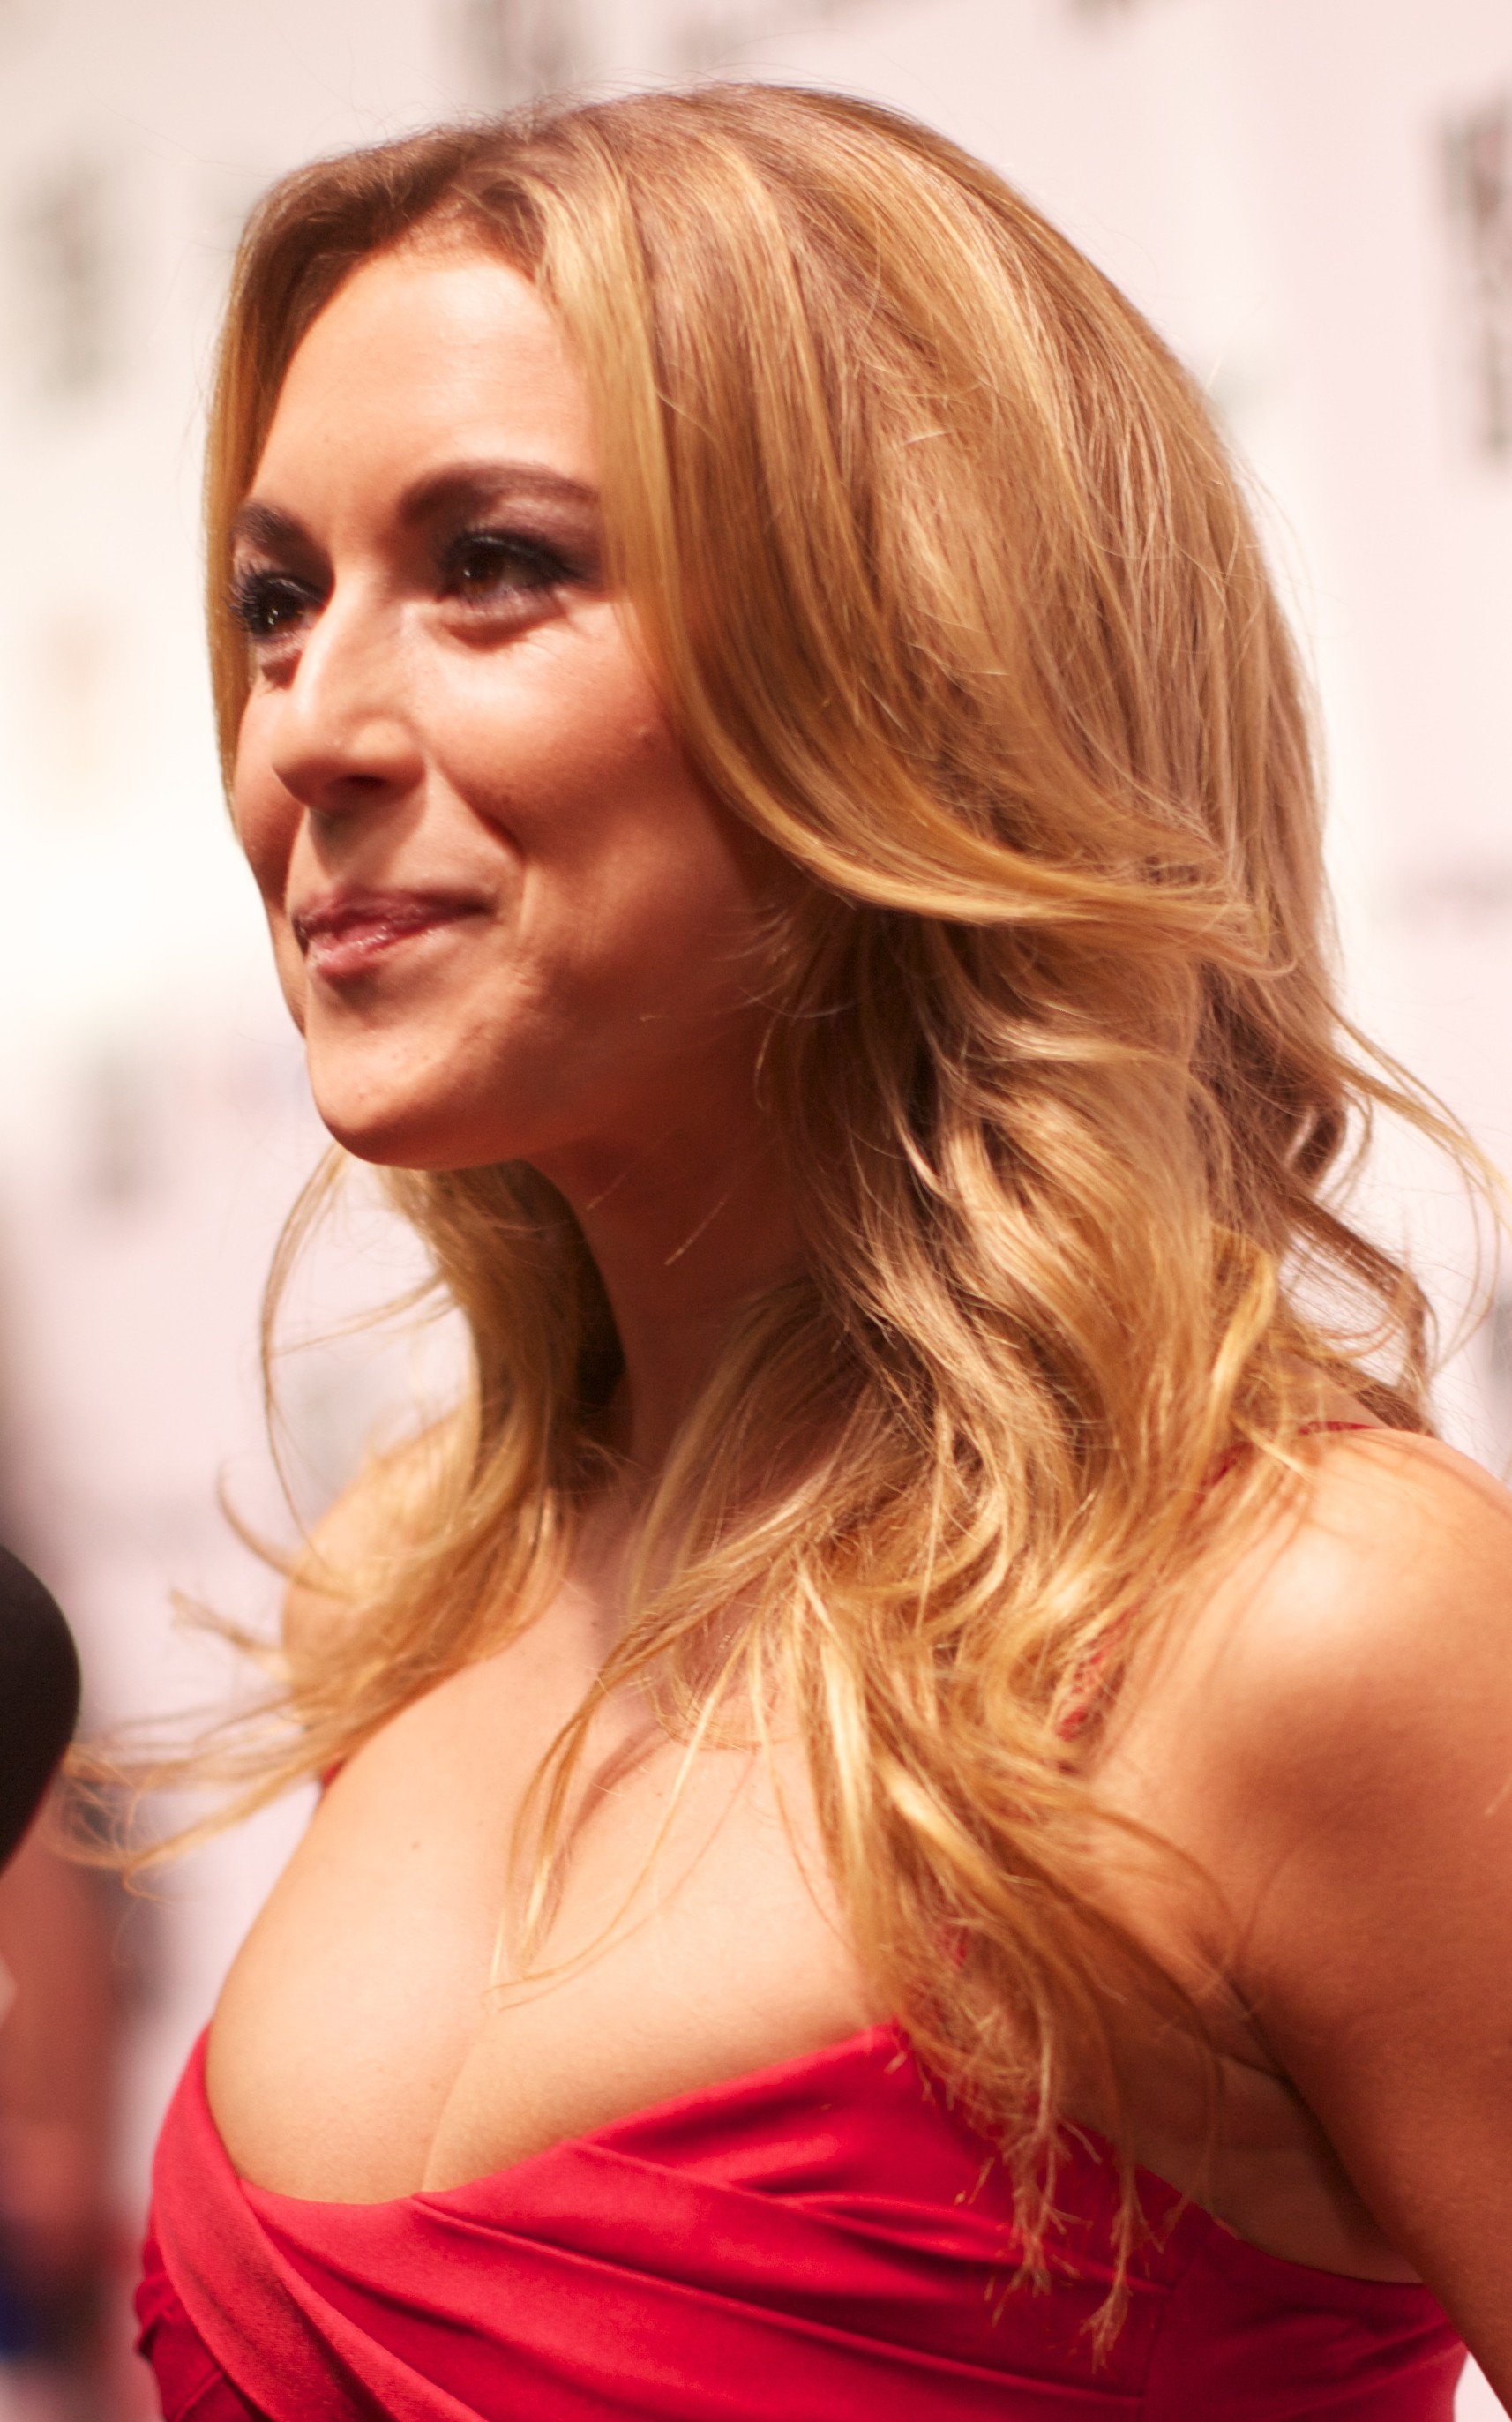 Alexa vega Search